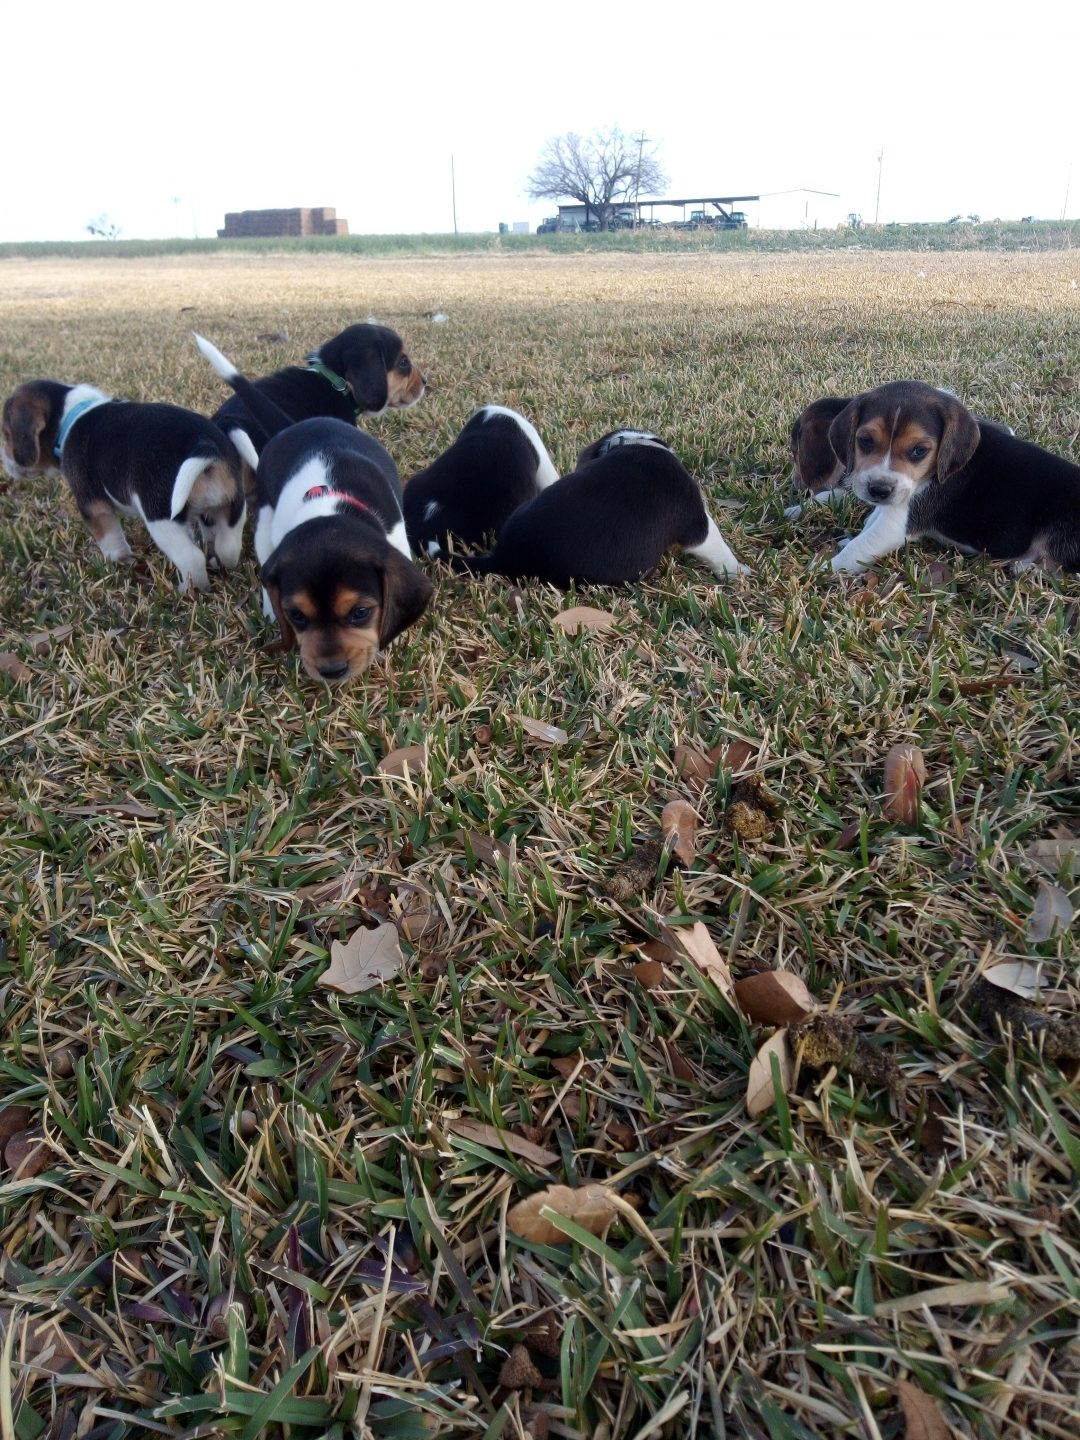 Bexar -AKC Beagle pup for sale in La Pryor, Texas